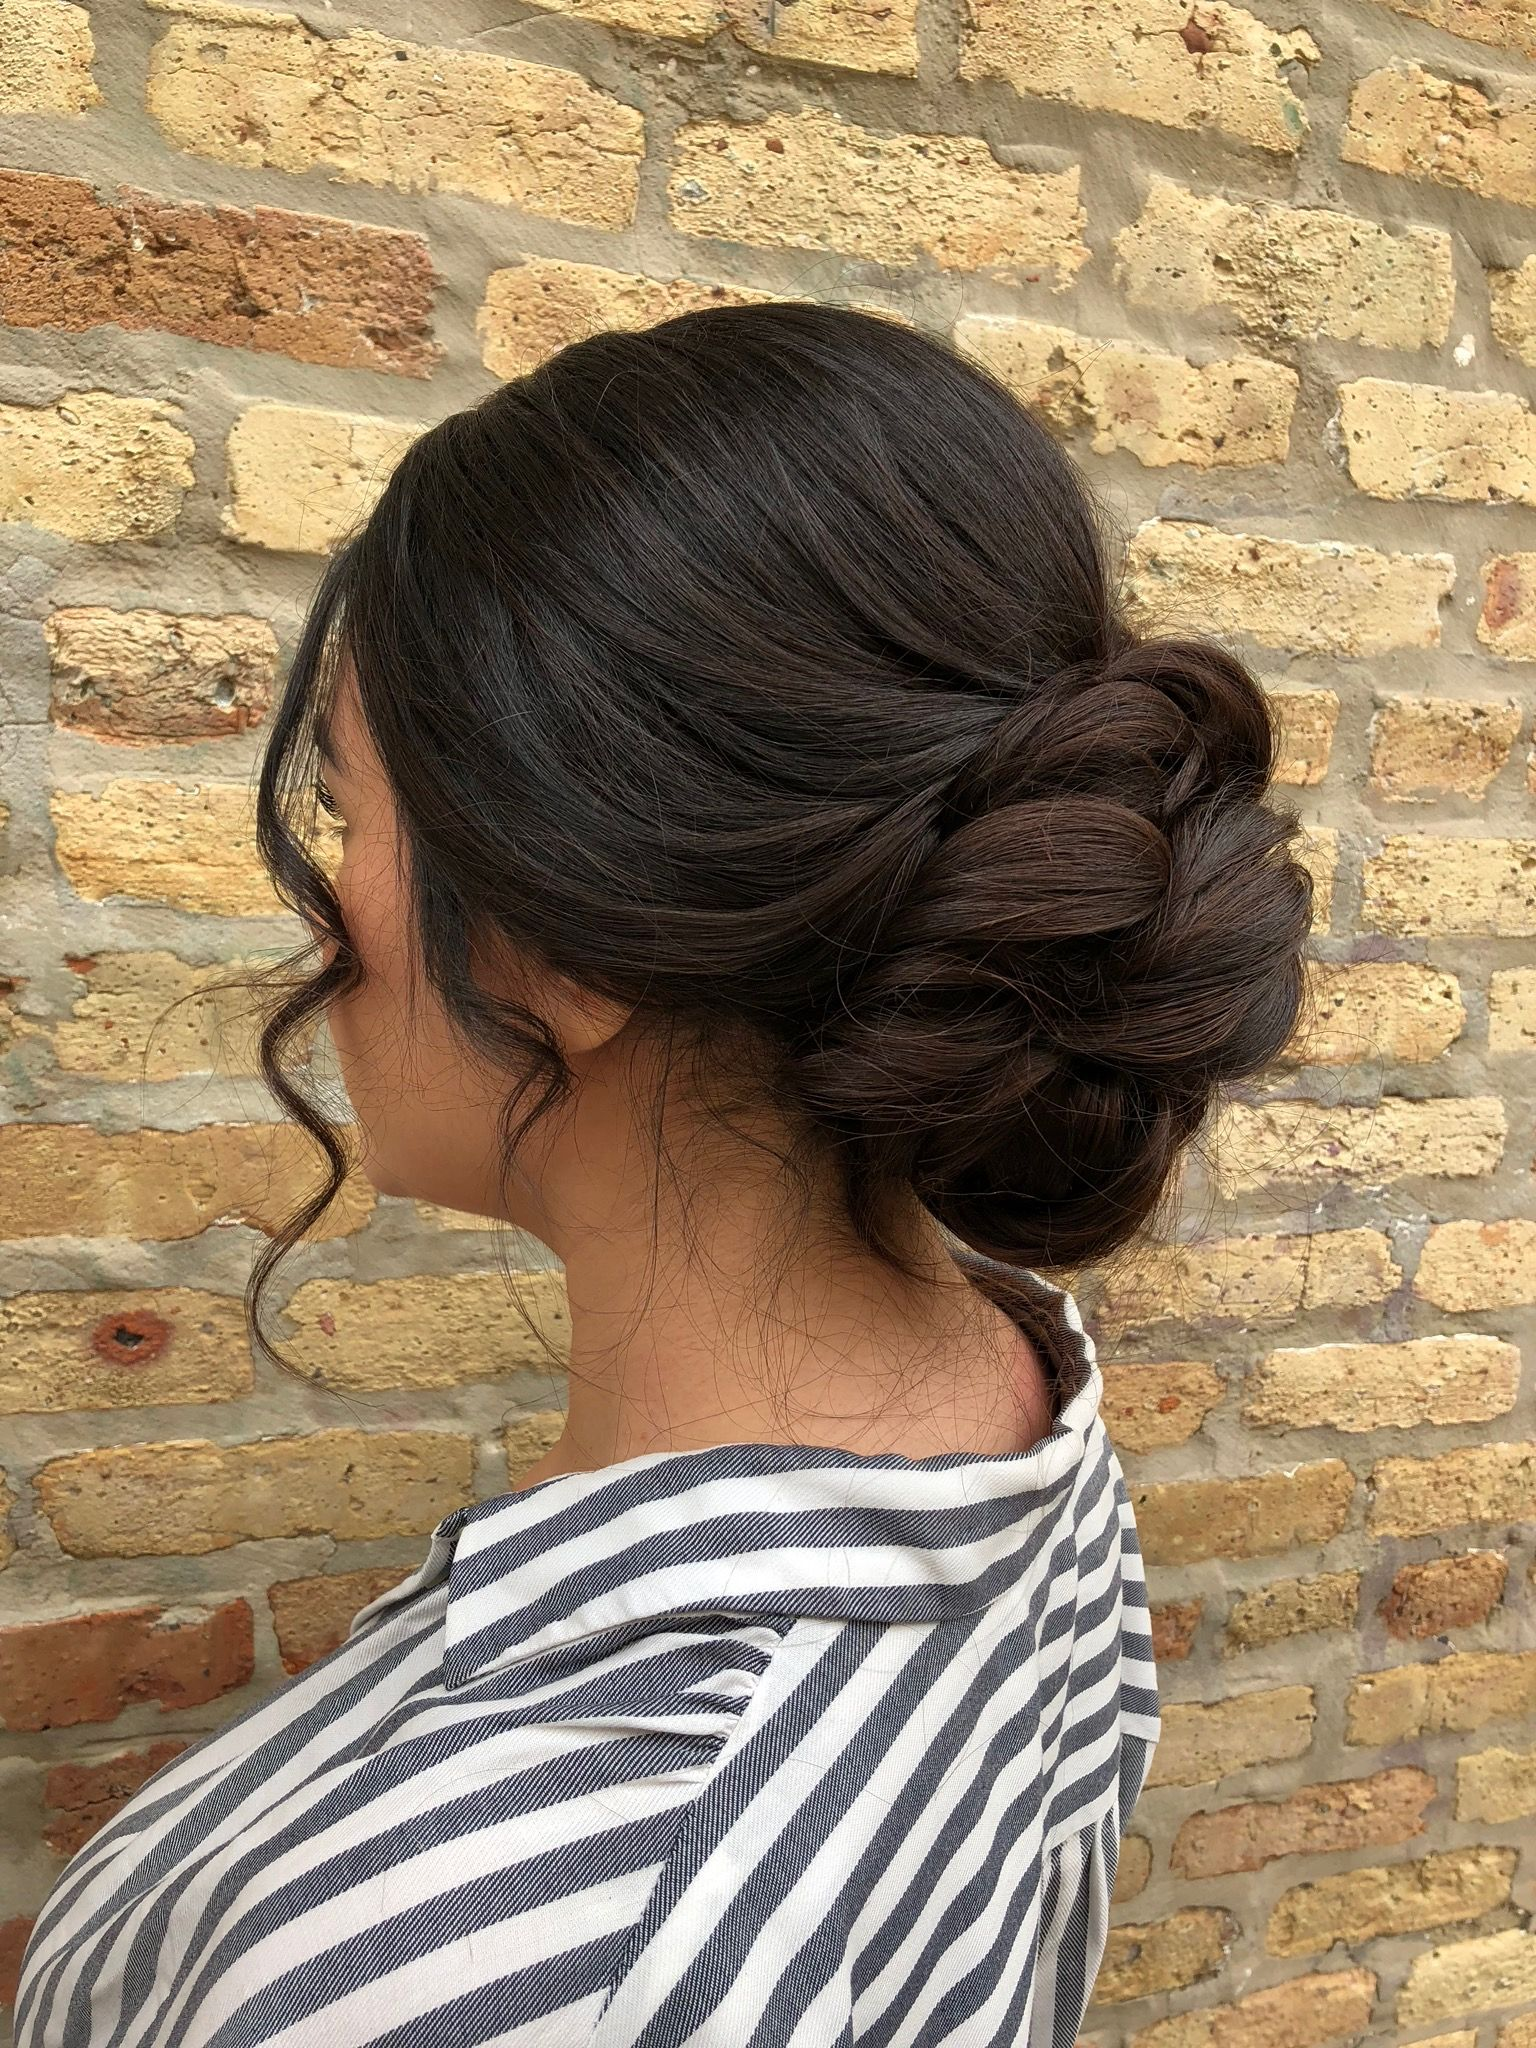 Elegant Swept Back Updo With Low Bun Curly Face Framing Pieces Hair By Goldplaited Hairstyles For Prom We Event Hairstyles Quince Hairstyles Hair Styles